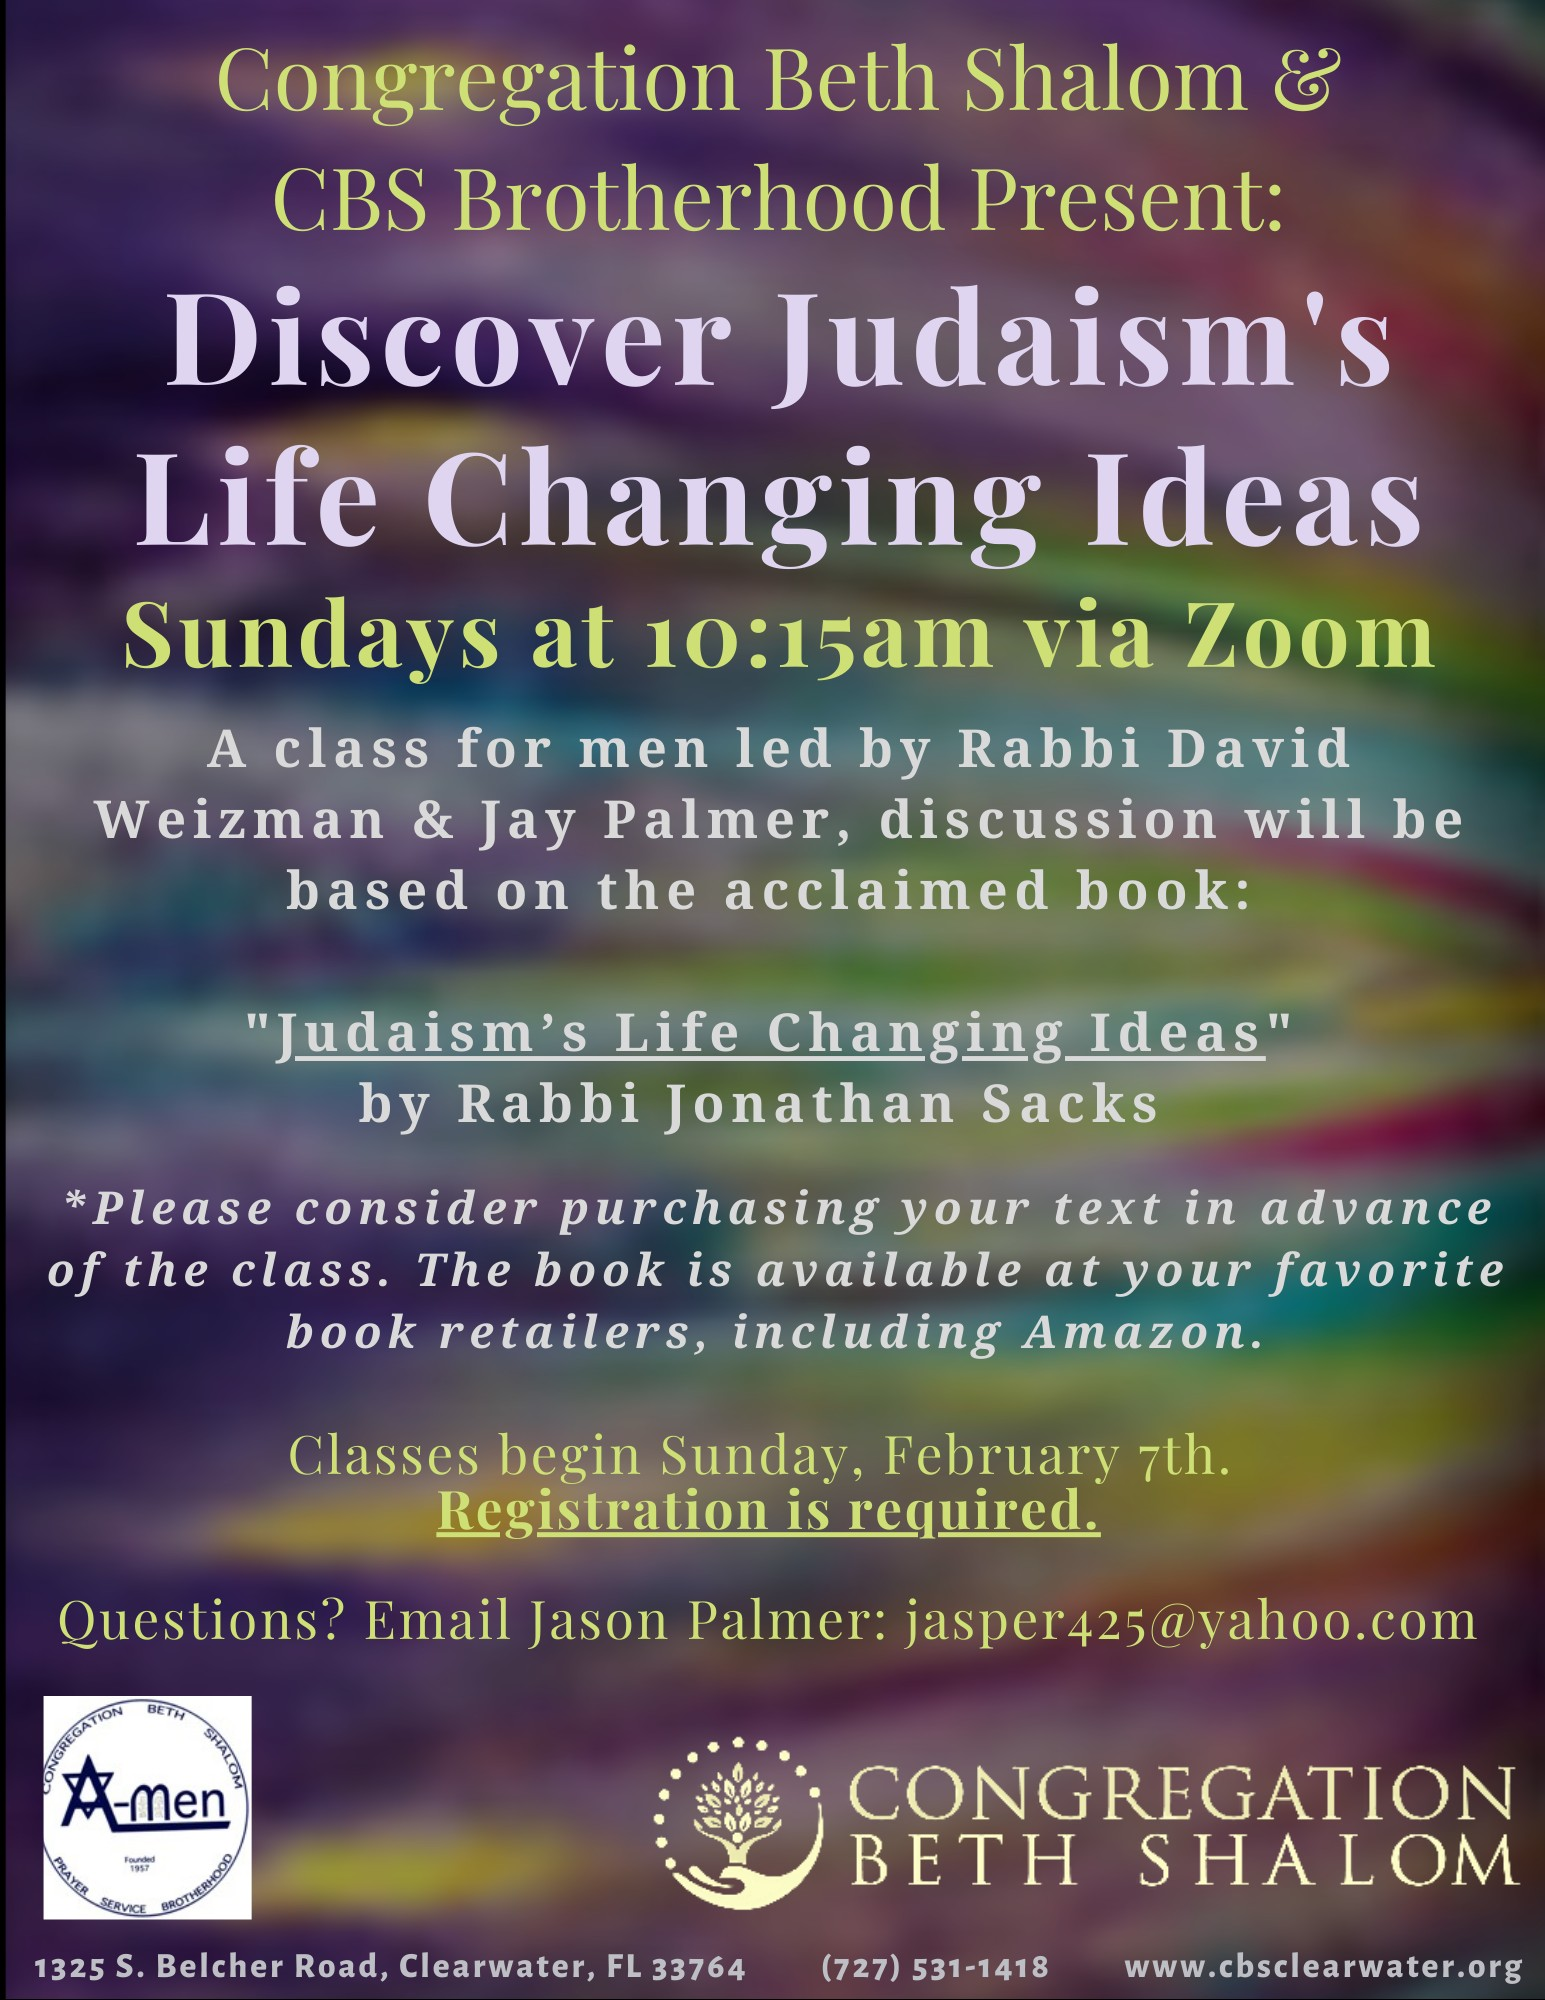 """</a>                                                                                                                                                                                       <span class=""""slider_description"""">A Class for Men: Join Rabbi David Weizman & Jay Palmer for weekly discussions based on the acclaimed book. Register now!</span>"""